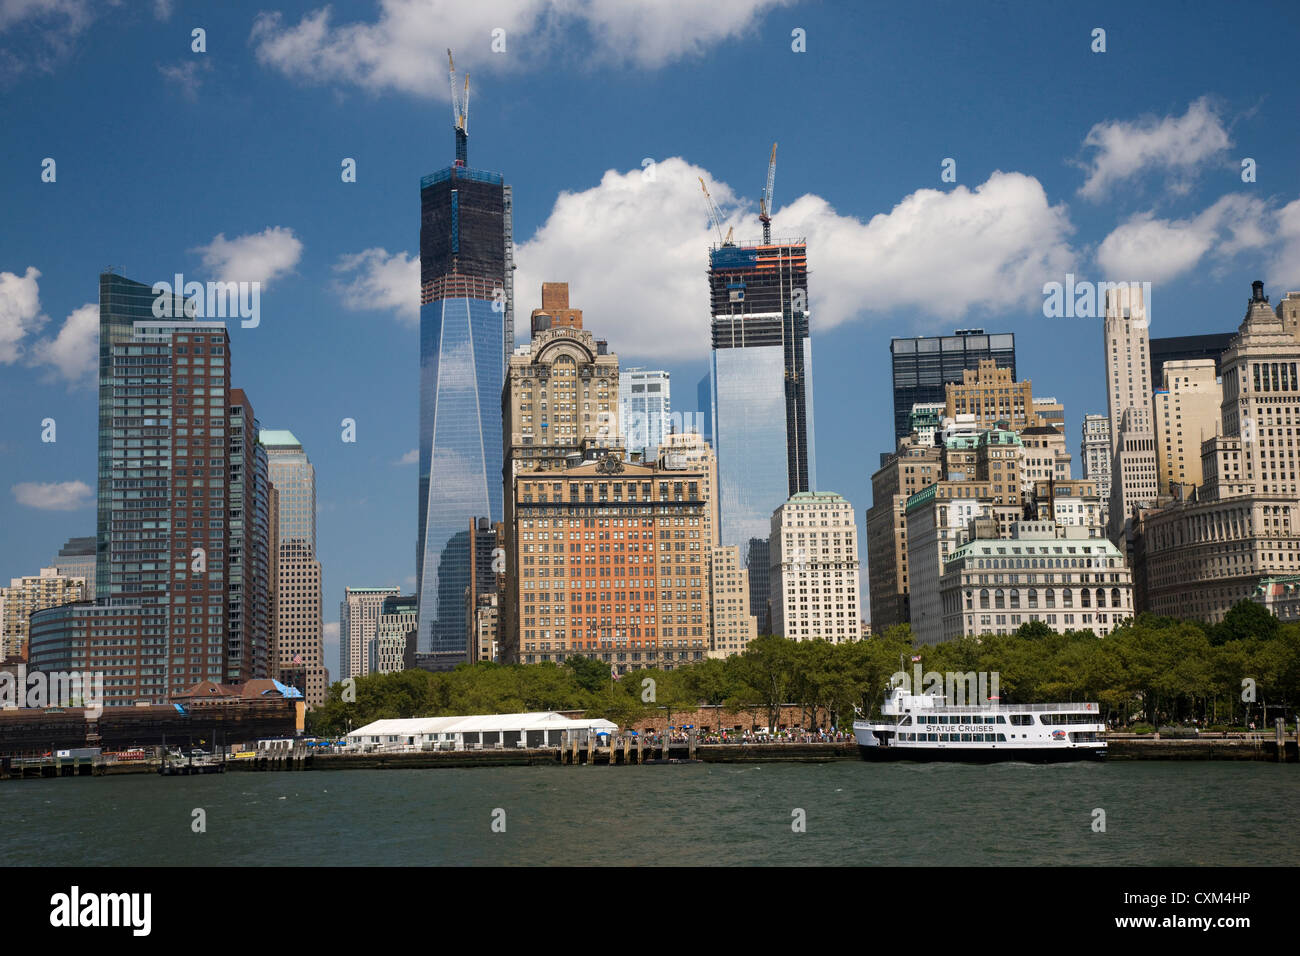 One and Two World Trade Center 1 WTC and 2 WTC, under construction in New York - Stock Image